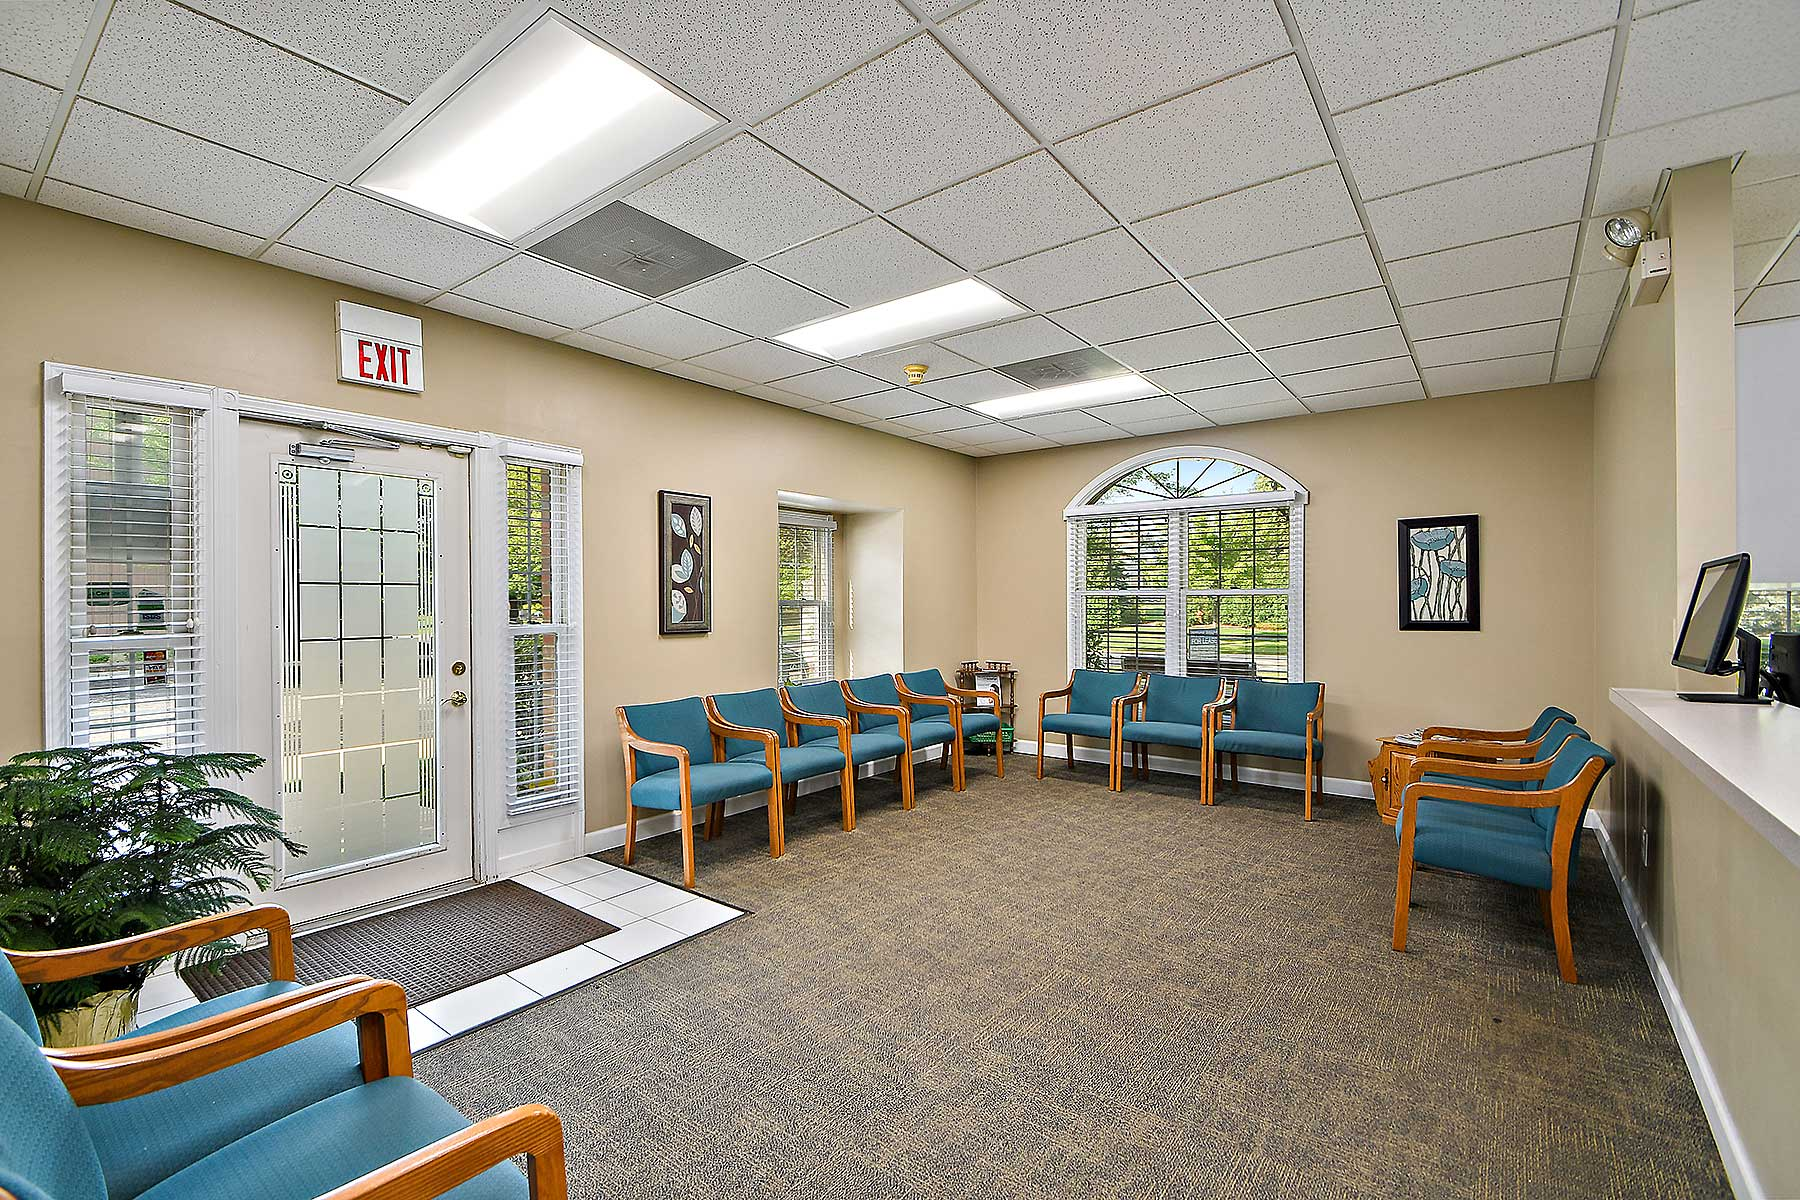 Orthodontic patient waiting room at Sonneveld Orthodontics. A large, beige-walled room with rows of teal chairs surrounding each side of the room. Front door is located on the left hand side of the image.